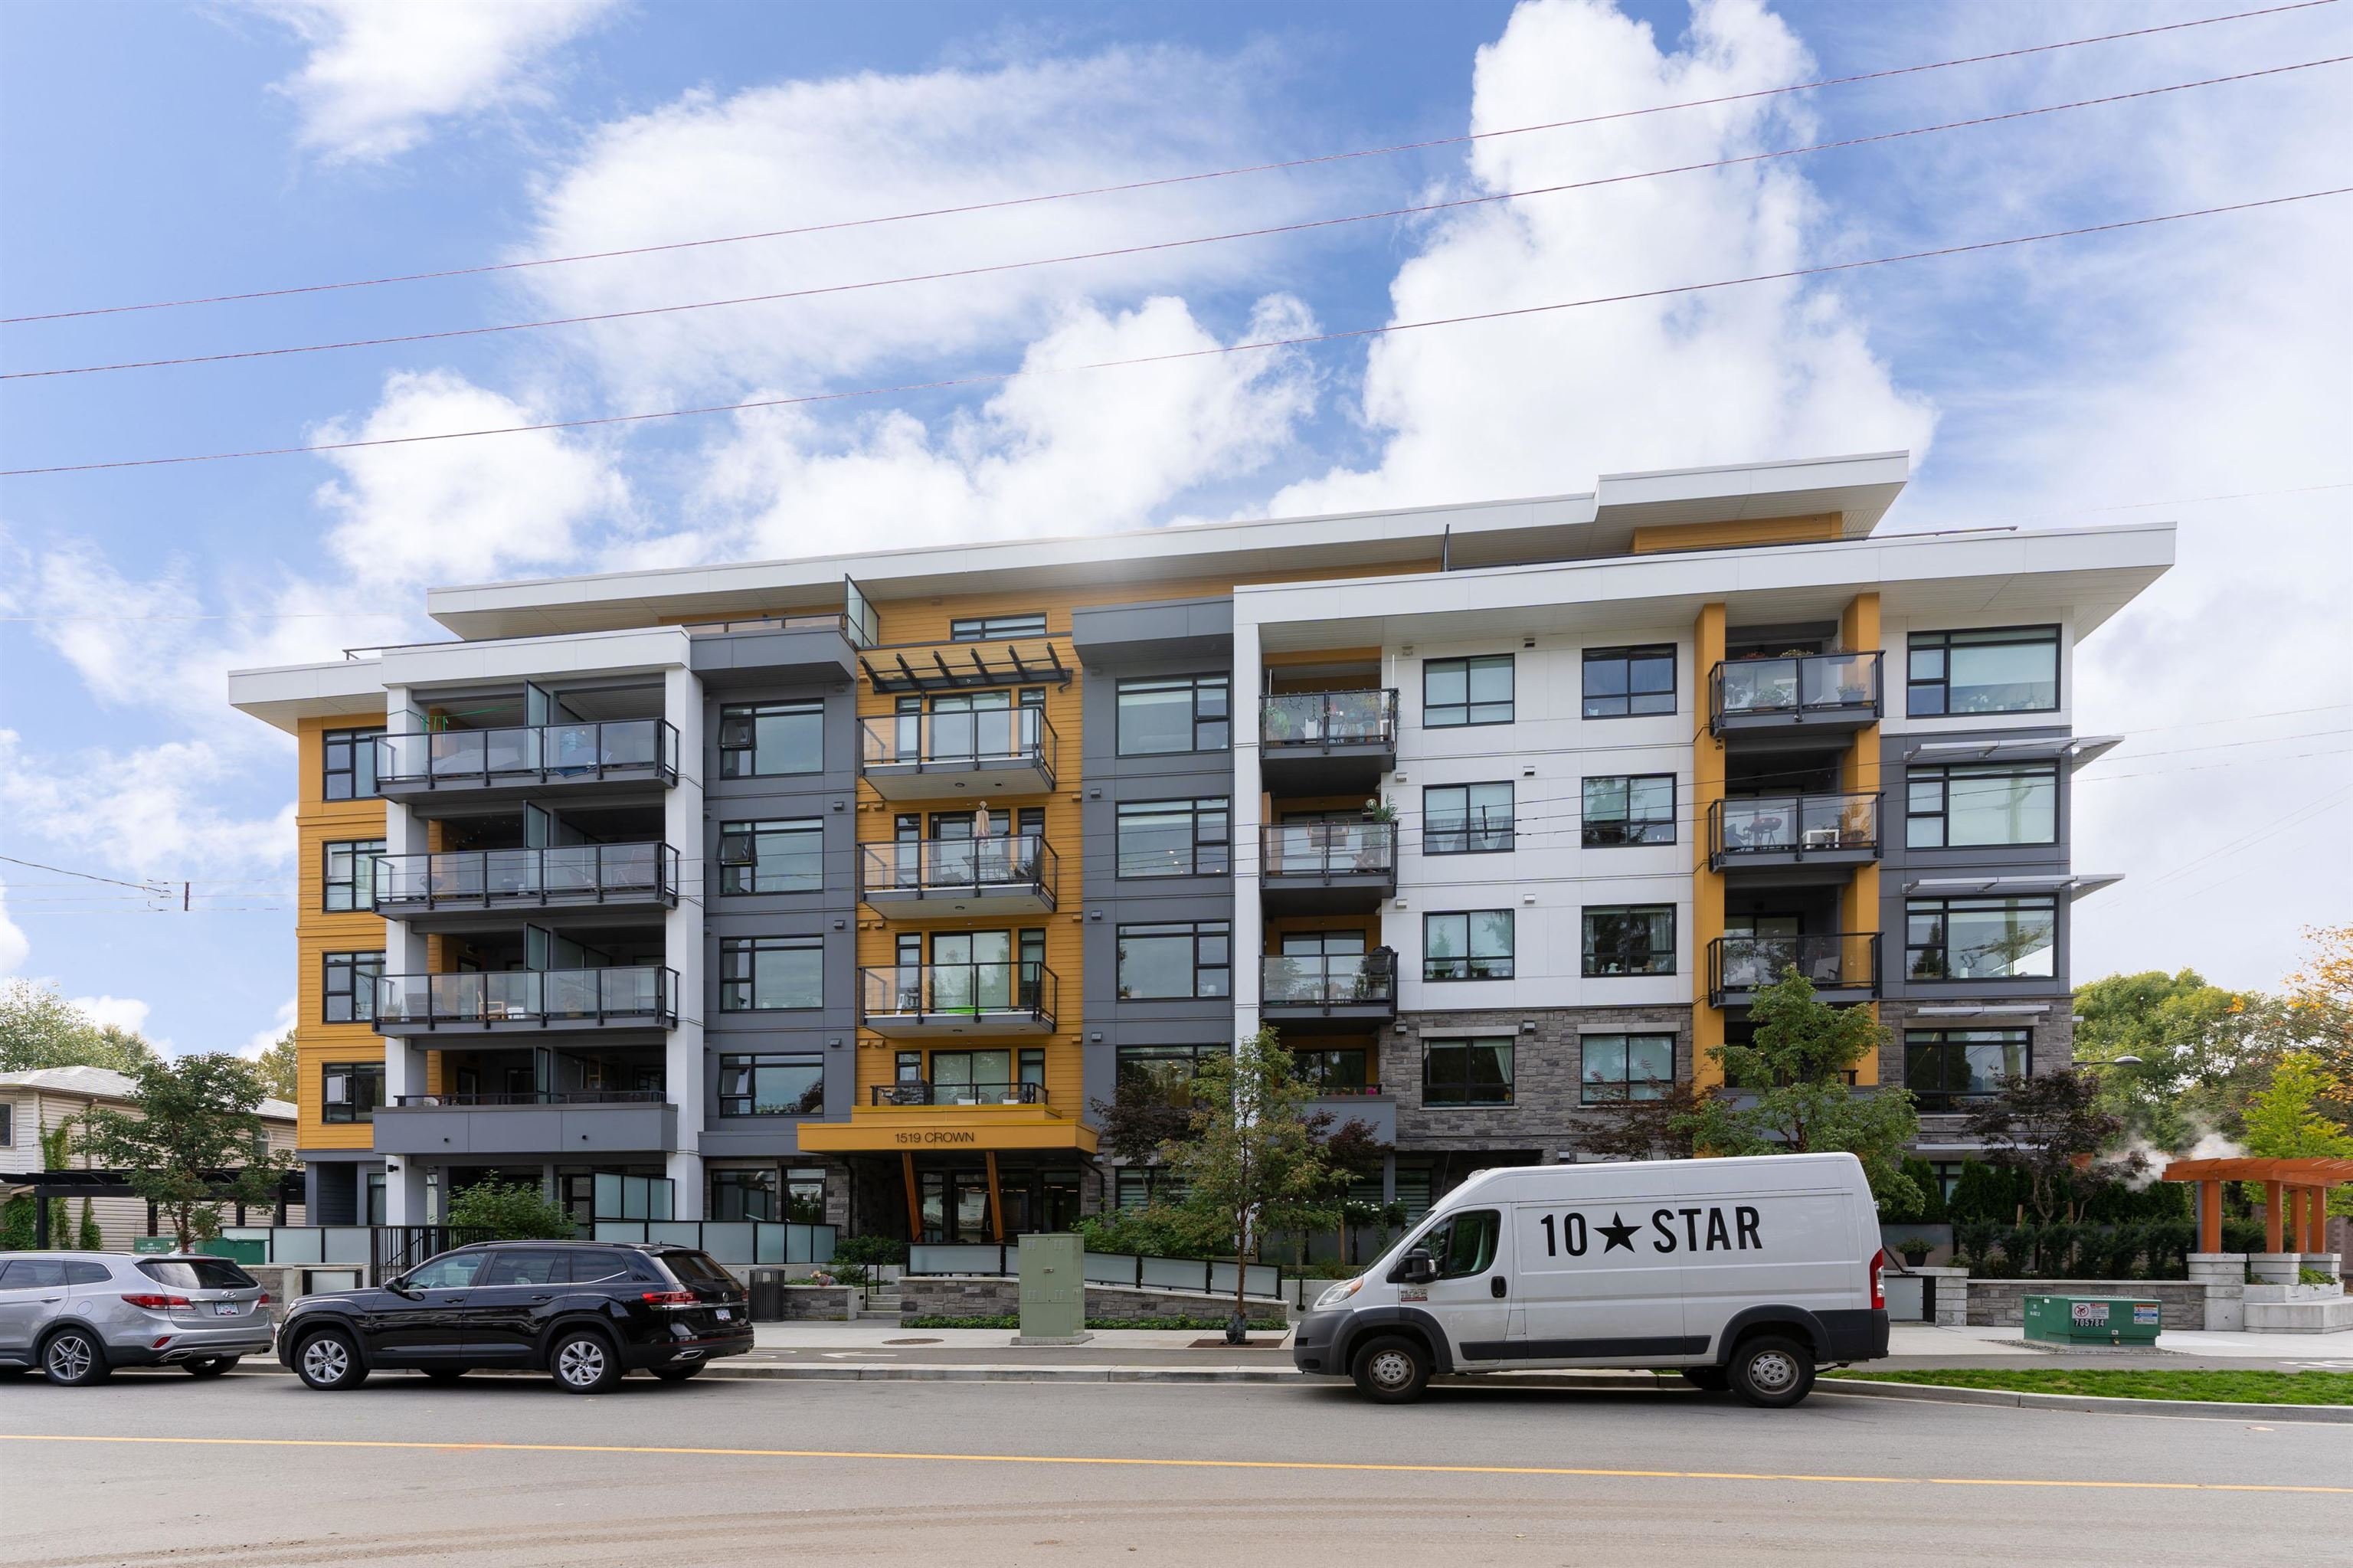 102 1519 CROWN STREET - Lynnmour Apartment/Condo for sale, 3 Bedrooms (R2625295) - #22